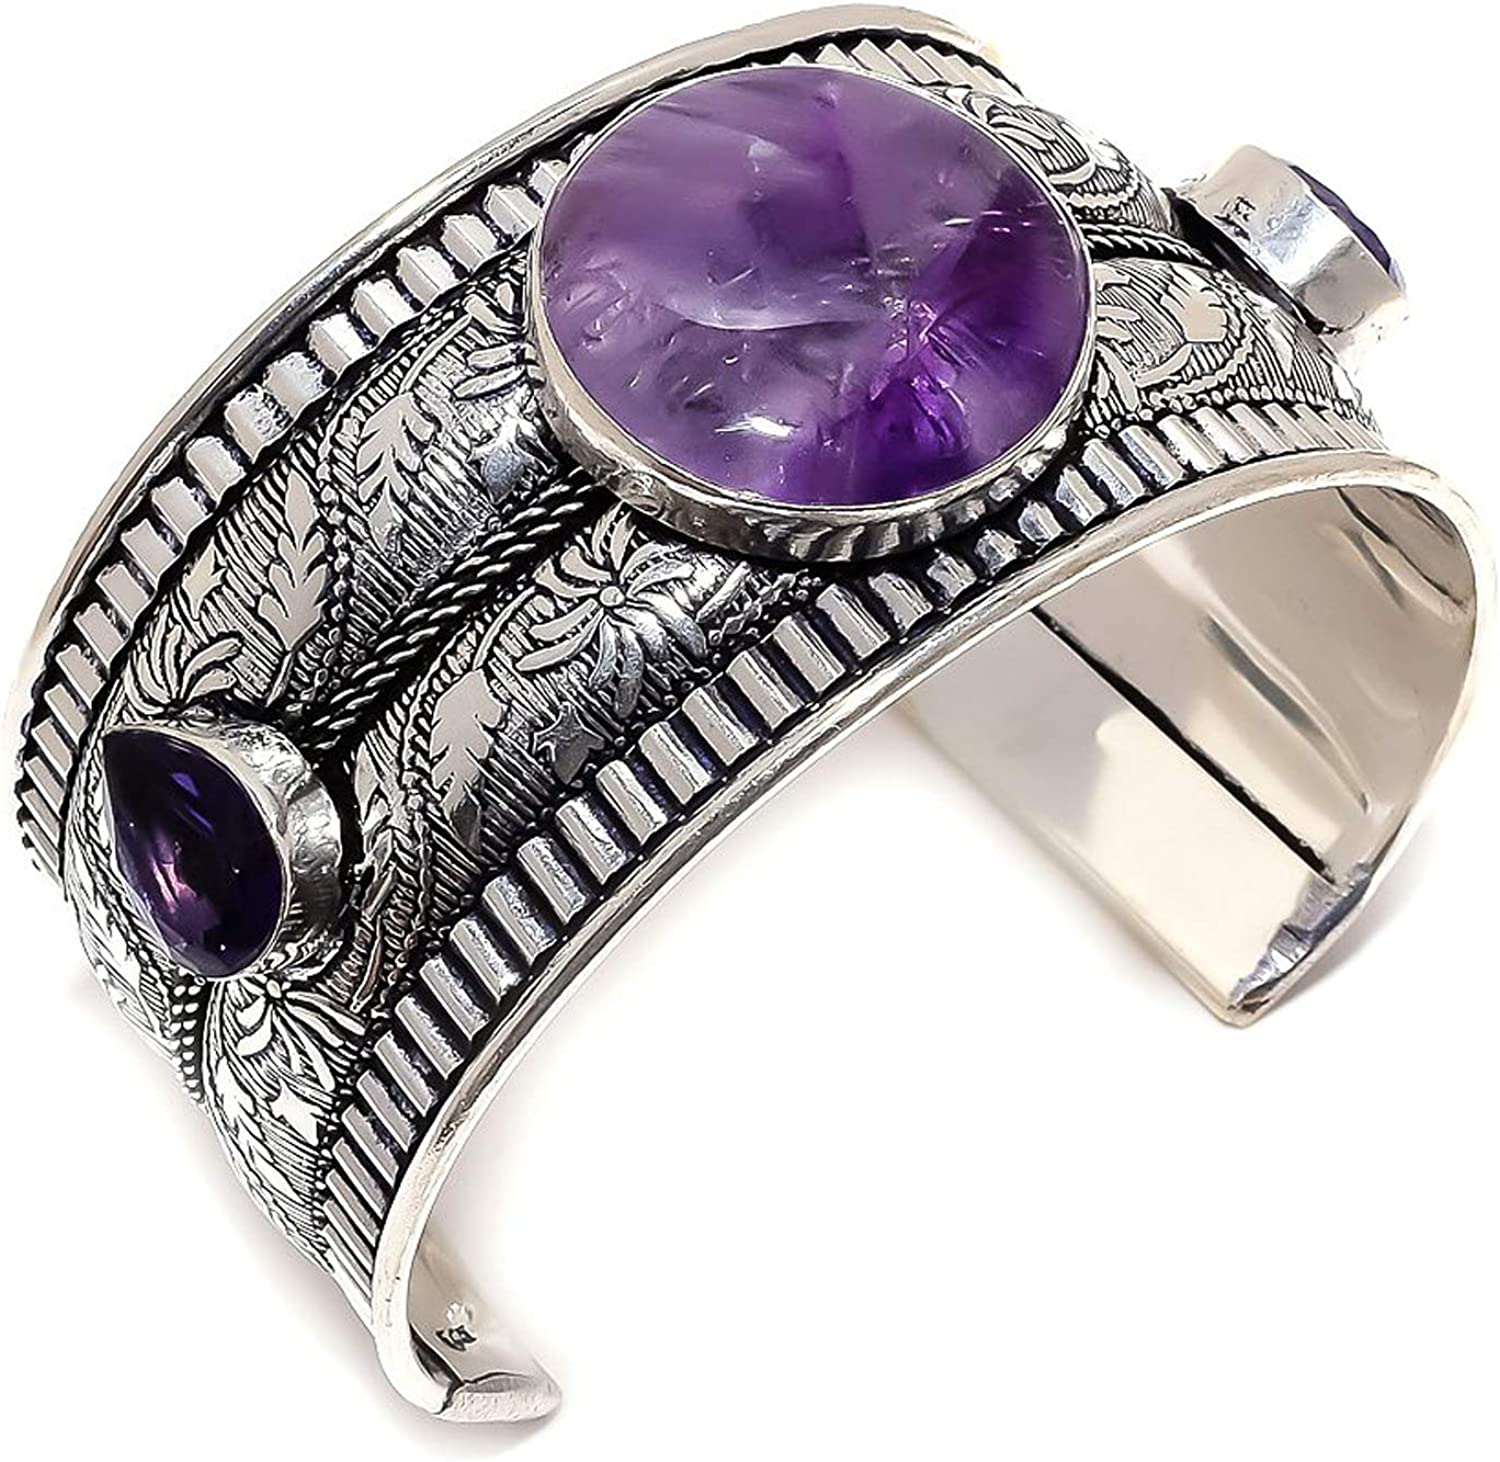 LARA GEMS Sales for sale STONES AND JEWELLERS African Ethnic Amethyst Japan's largest assortment Gemstone